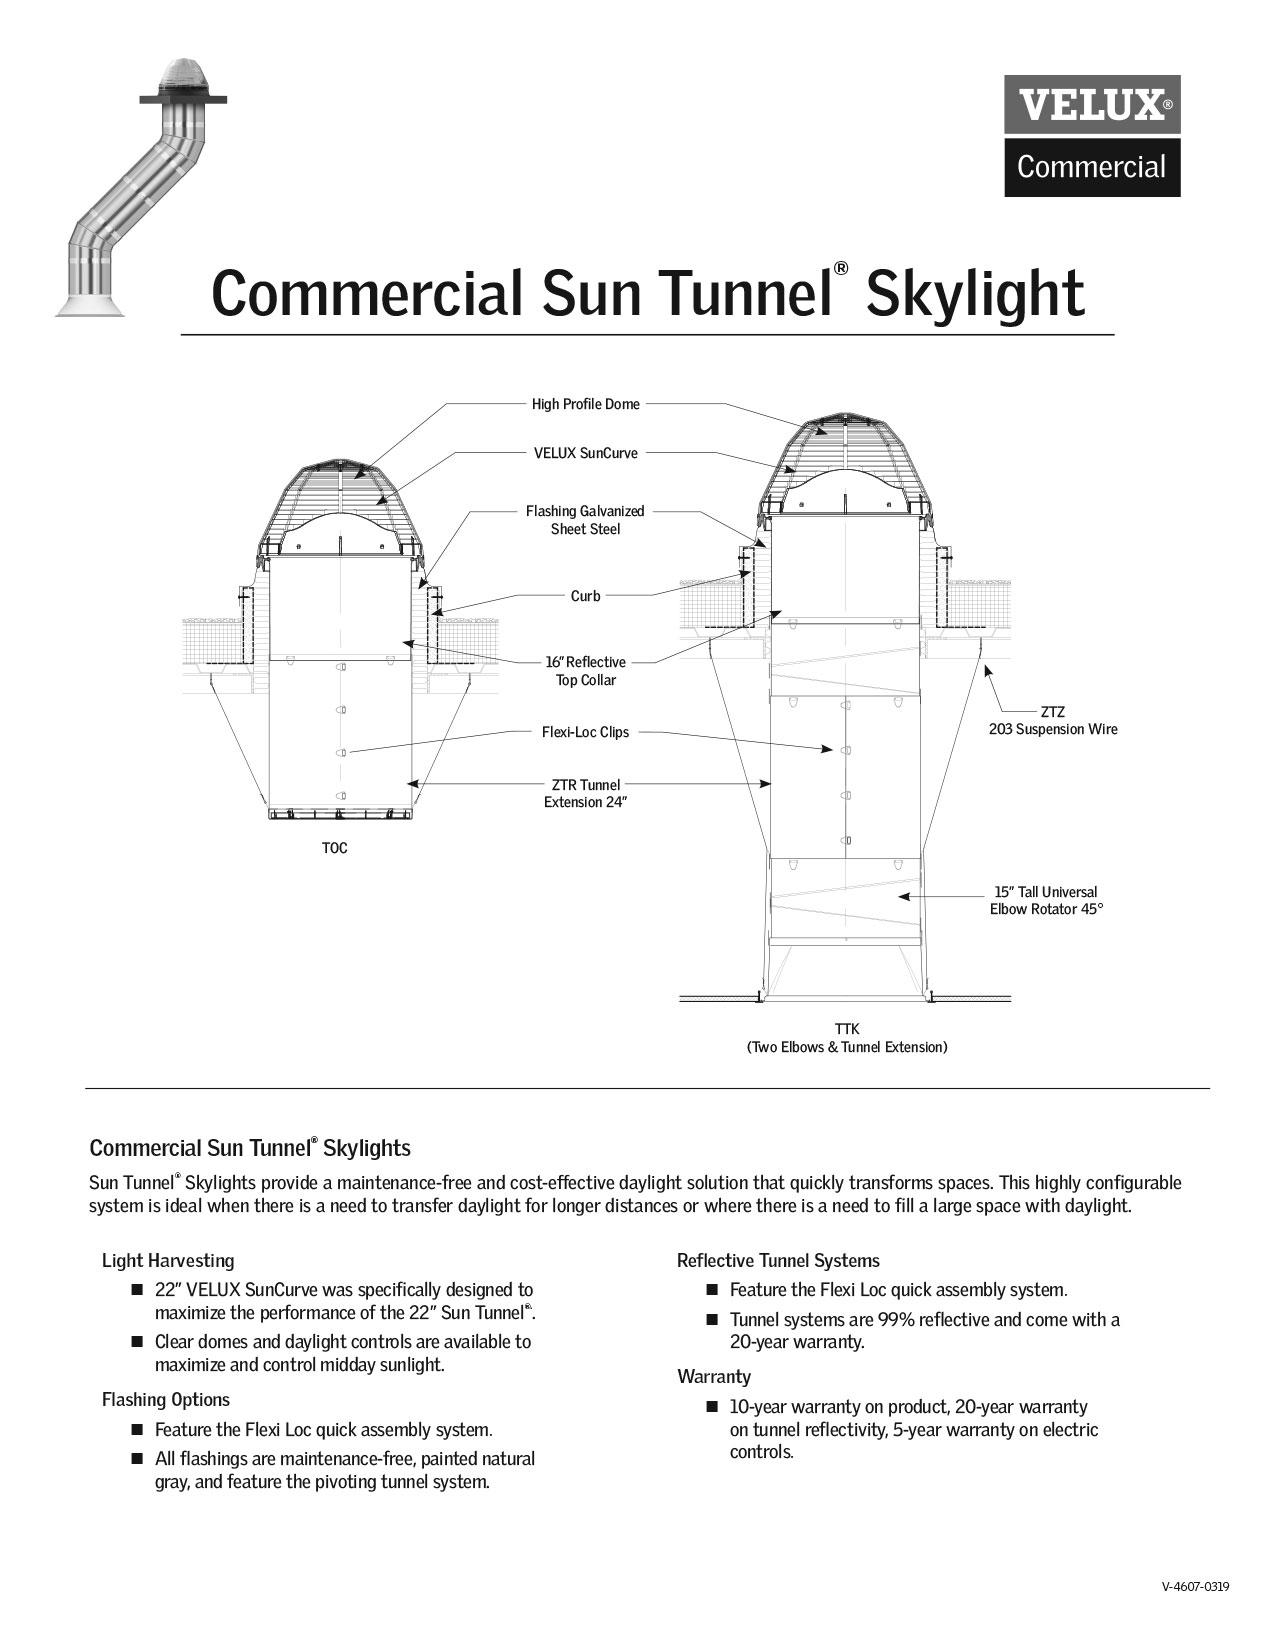 Commercial Sun Tunnel Technical Guide